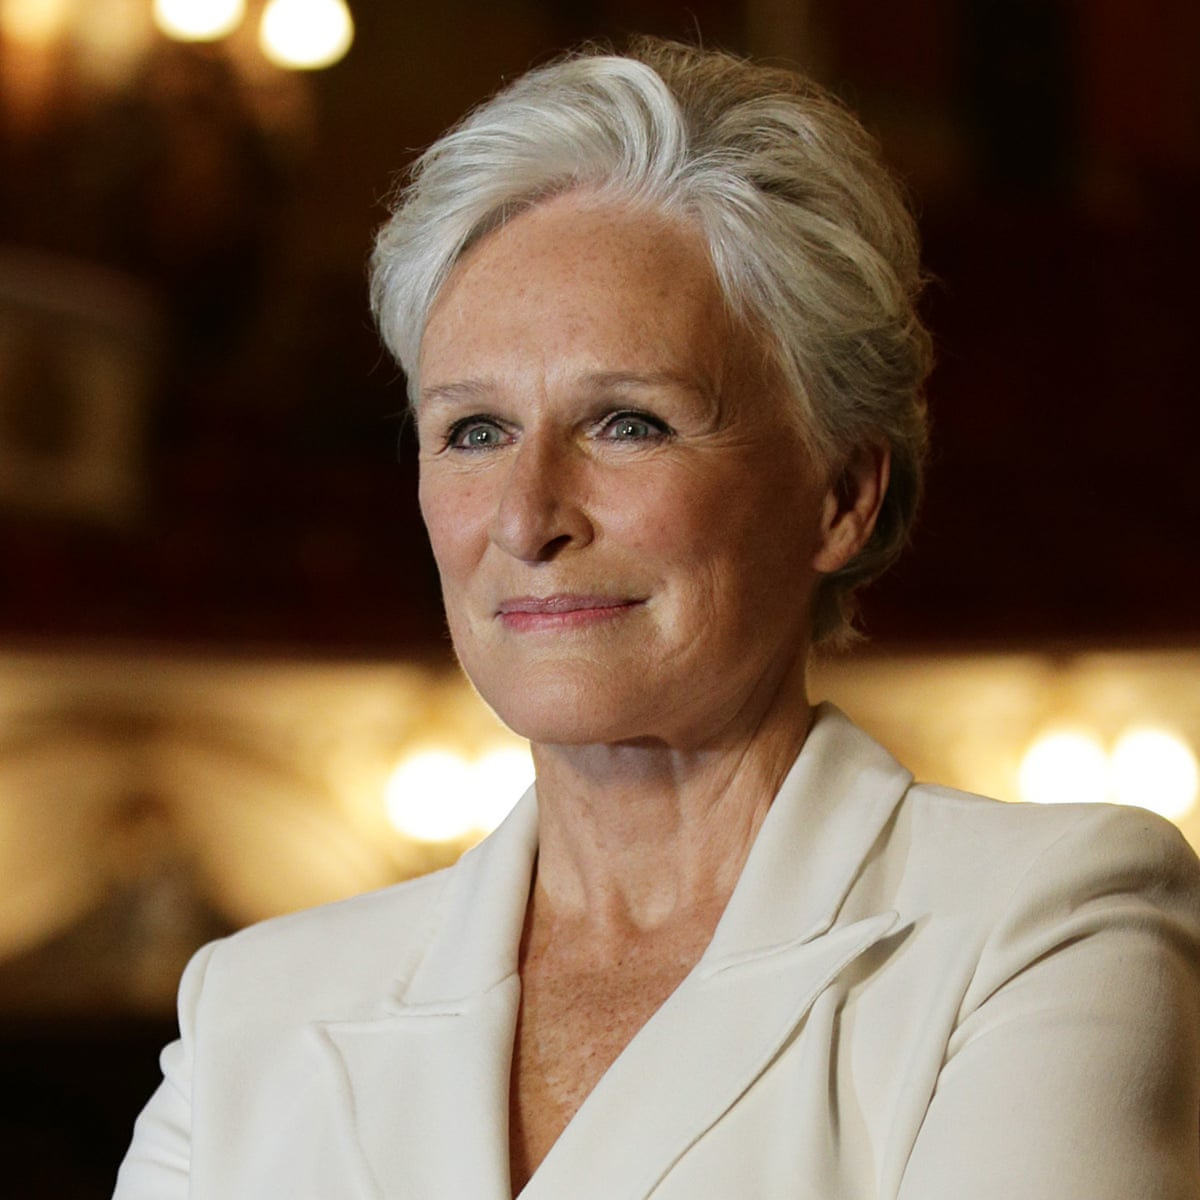 Glenn Close: critical acclaim built on strength of character | Film | The Guardian